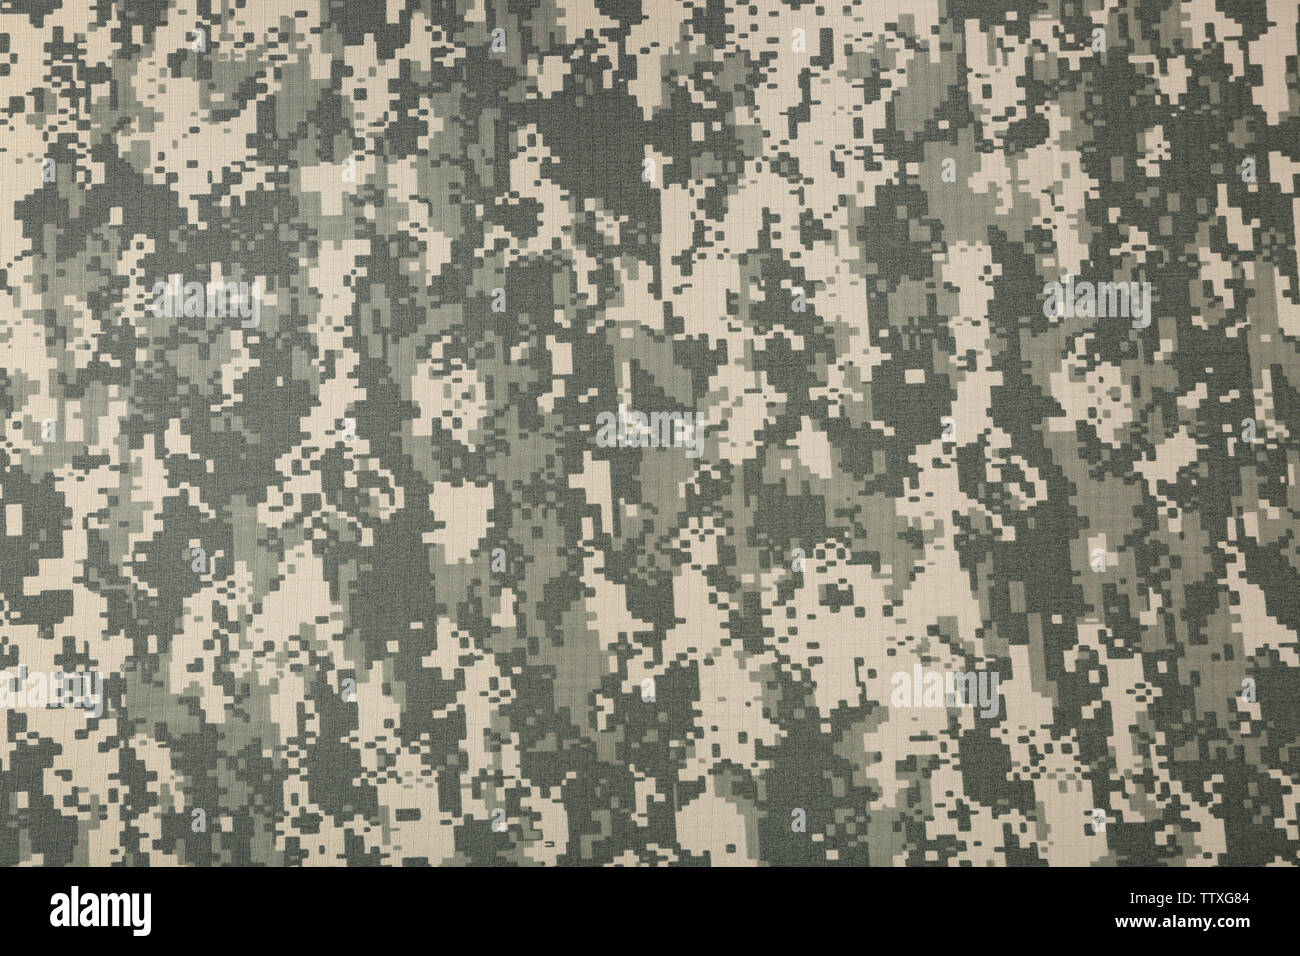 Camouflage Fabric Texture Stock Photos Camouflage Fabric